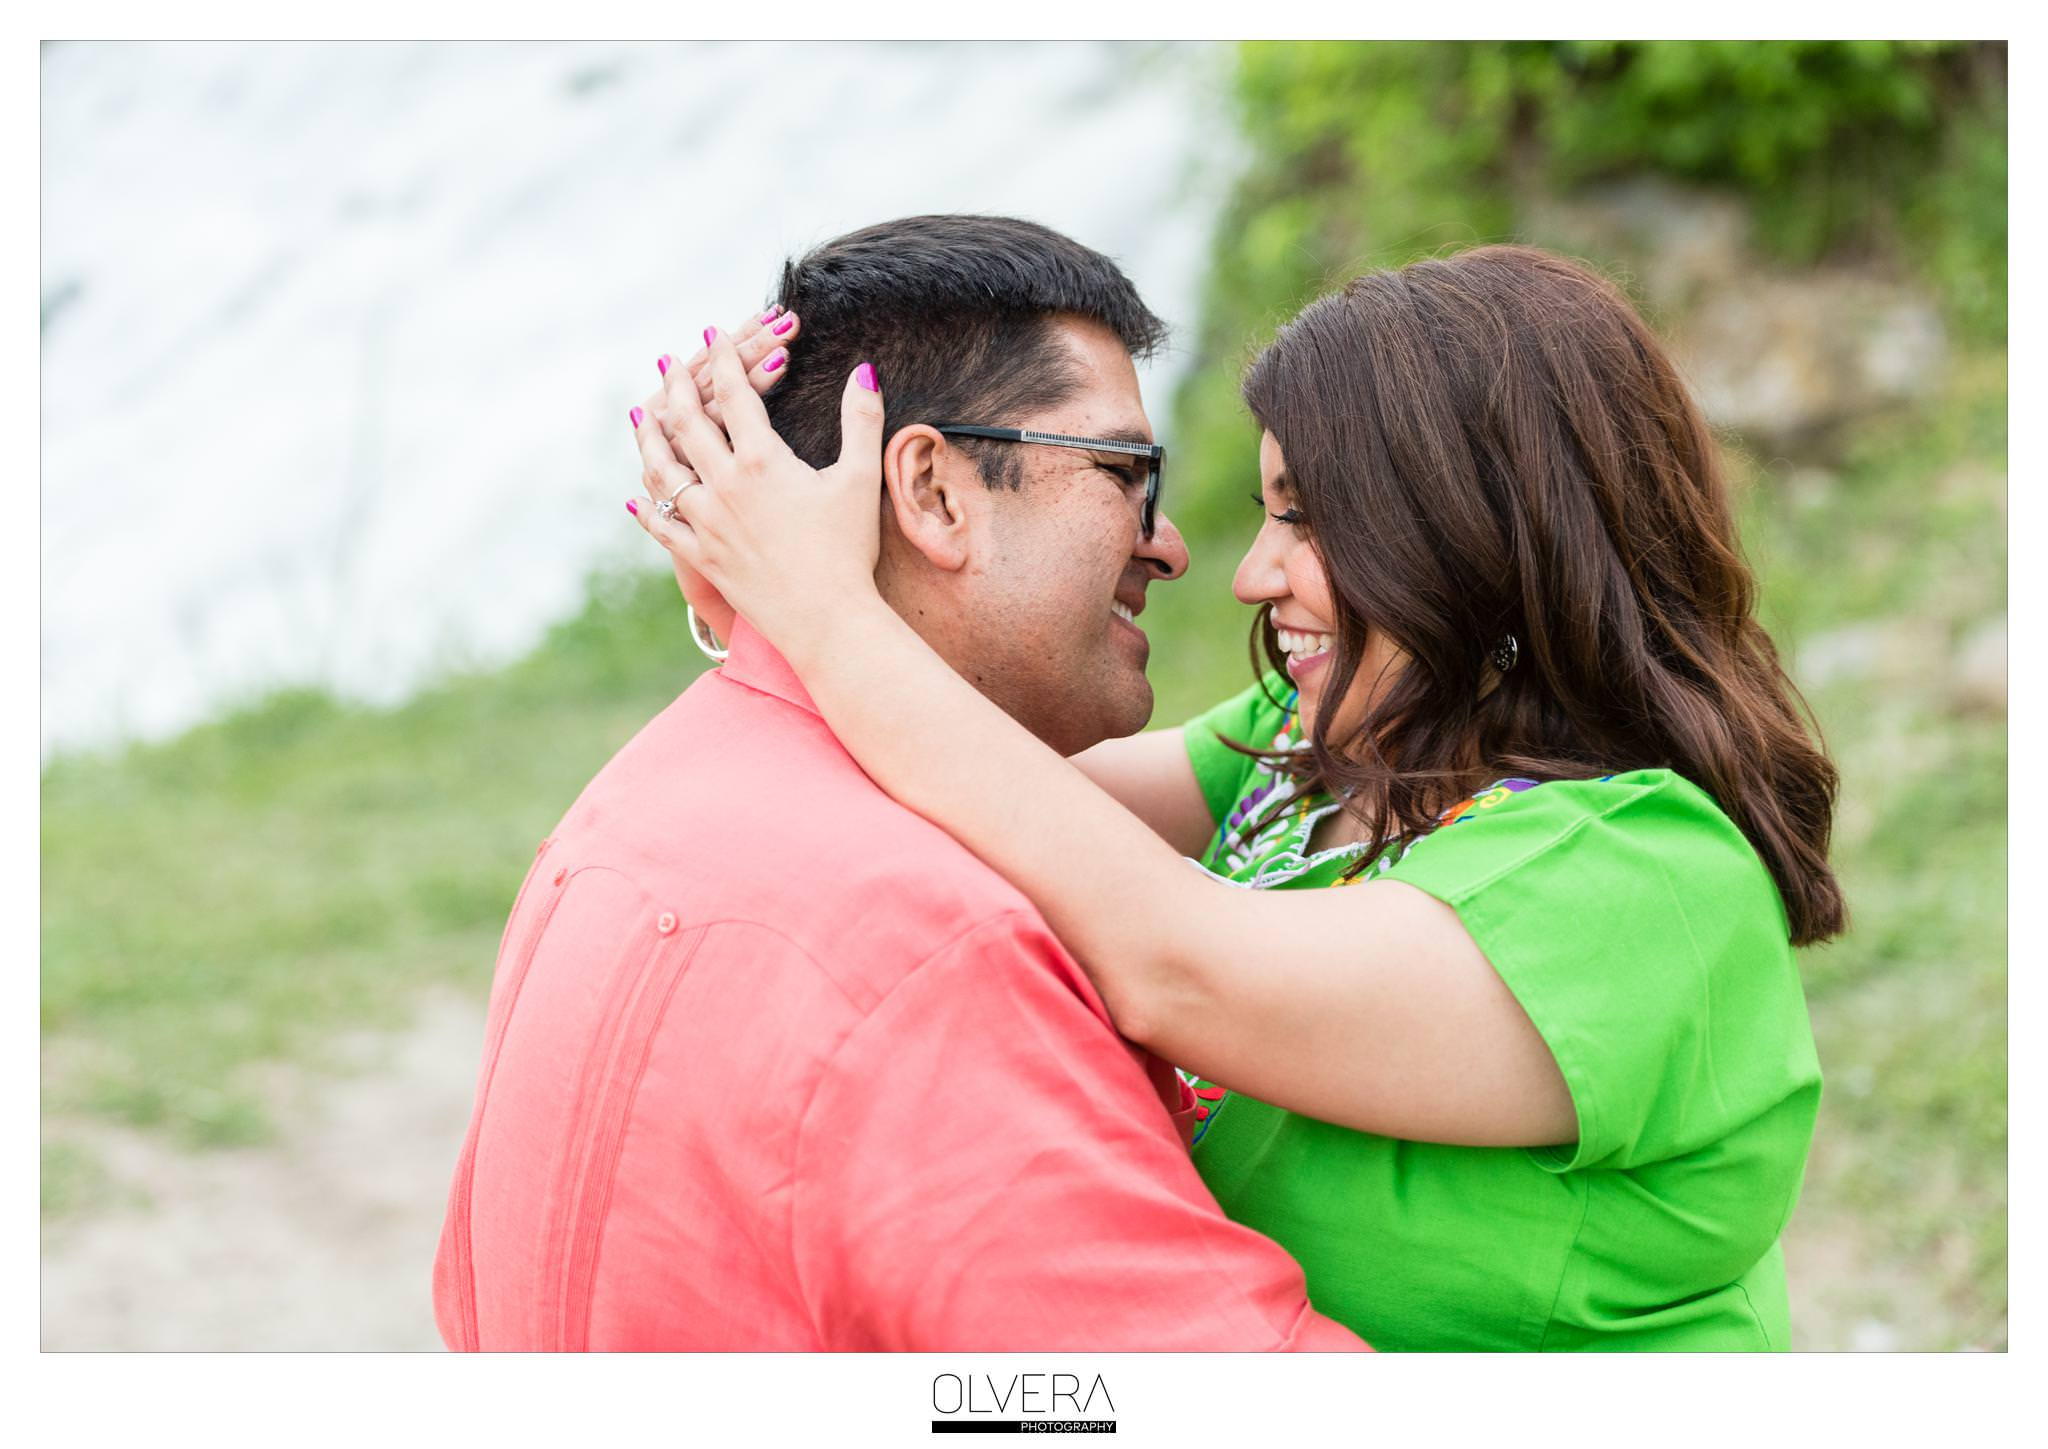 Mission-Espada-Engagement-photos- san antonio wedding photographer 7